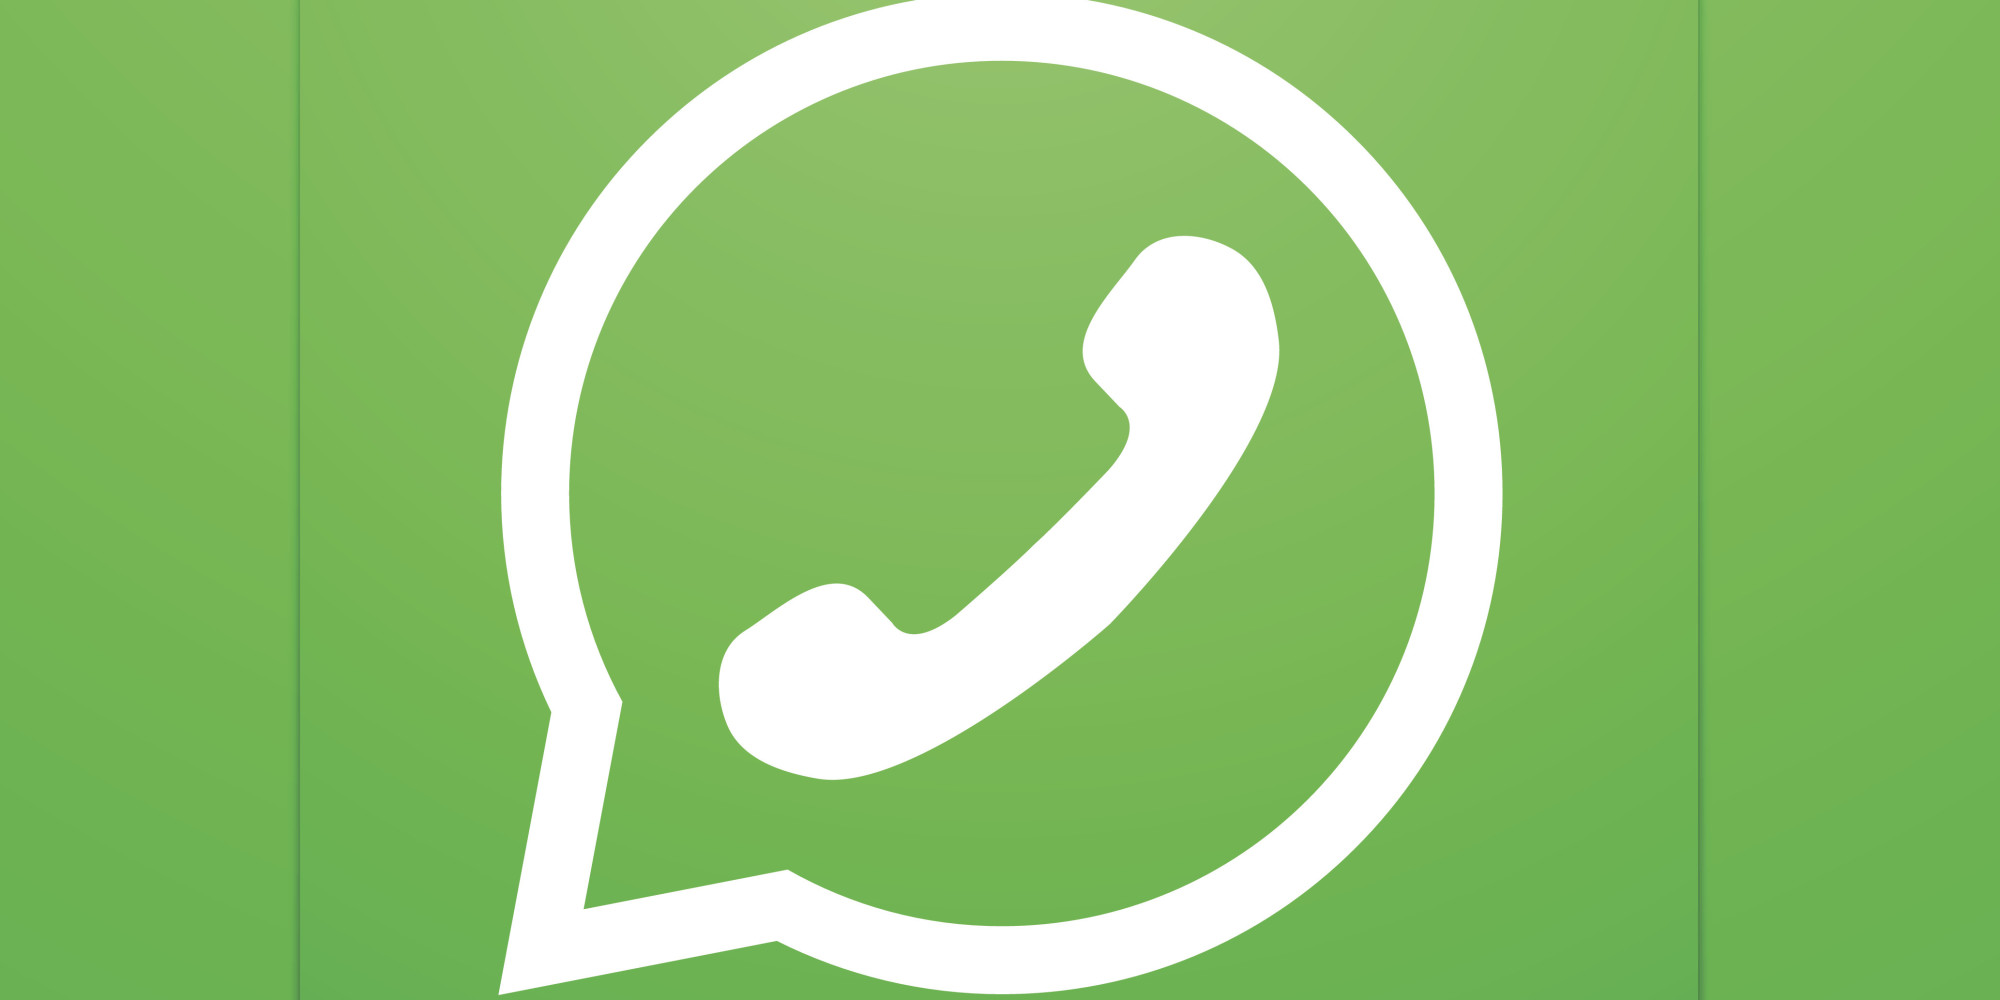 Security Threats on WhatsApp Bring Spy Apps Into the ...